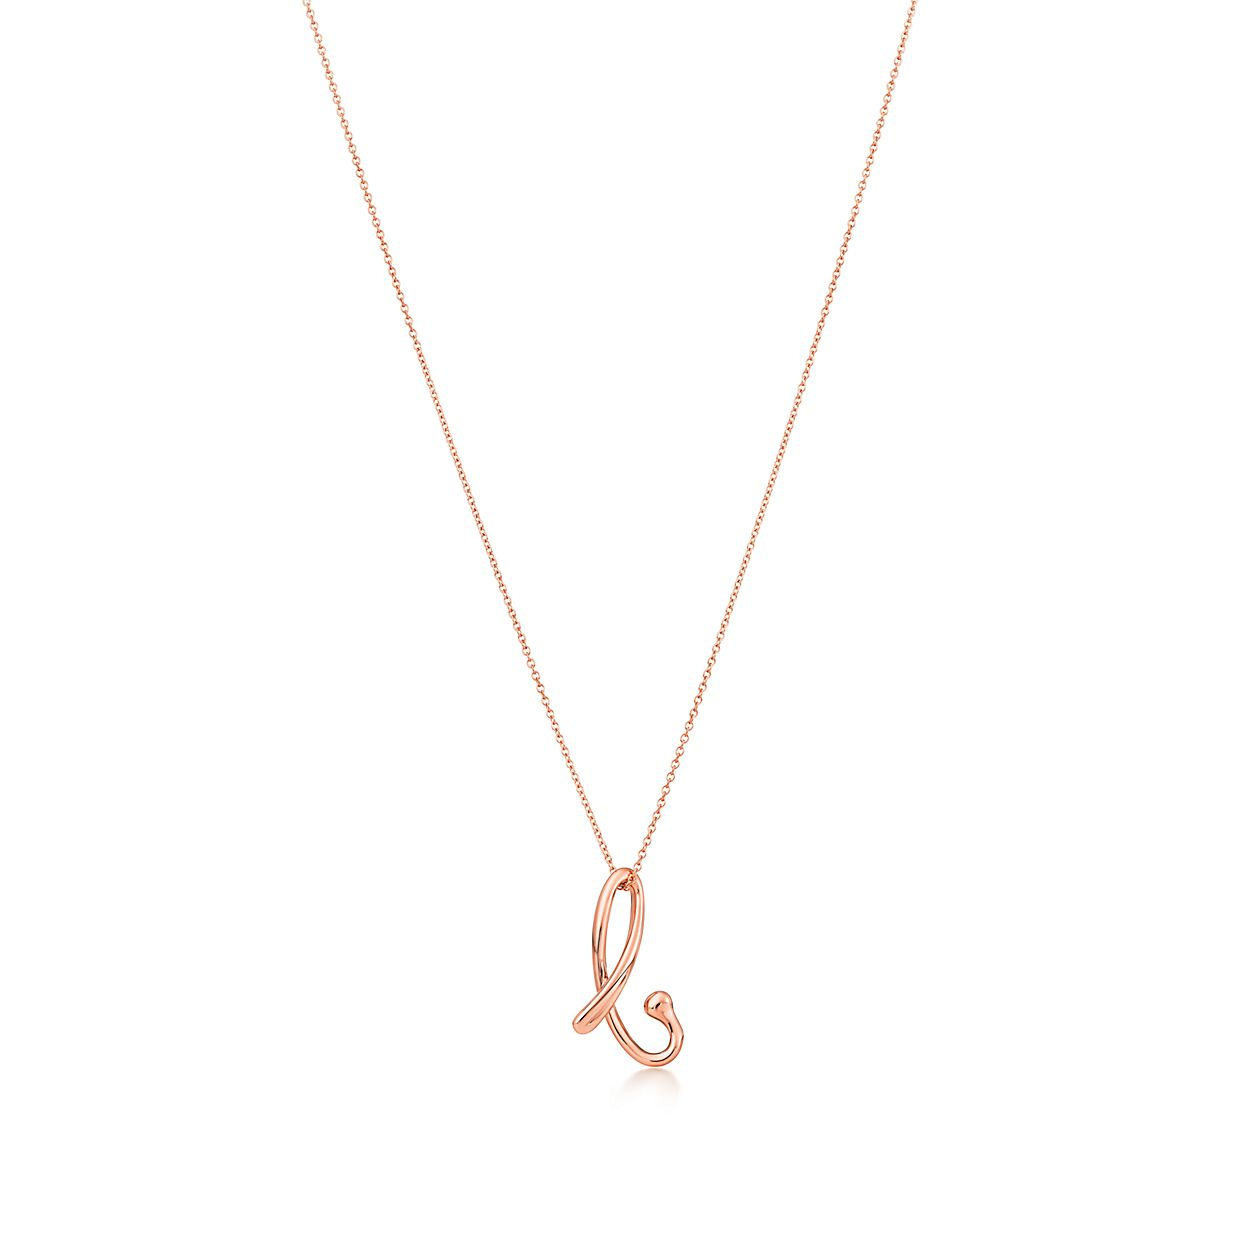 Elsa Peretti Alphabet pendant in 18k rose gold Letters A-Z available - Size J Tiffany & Co. HyEPdprVc7